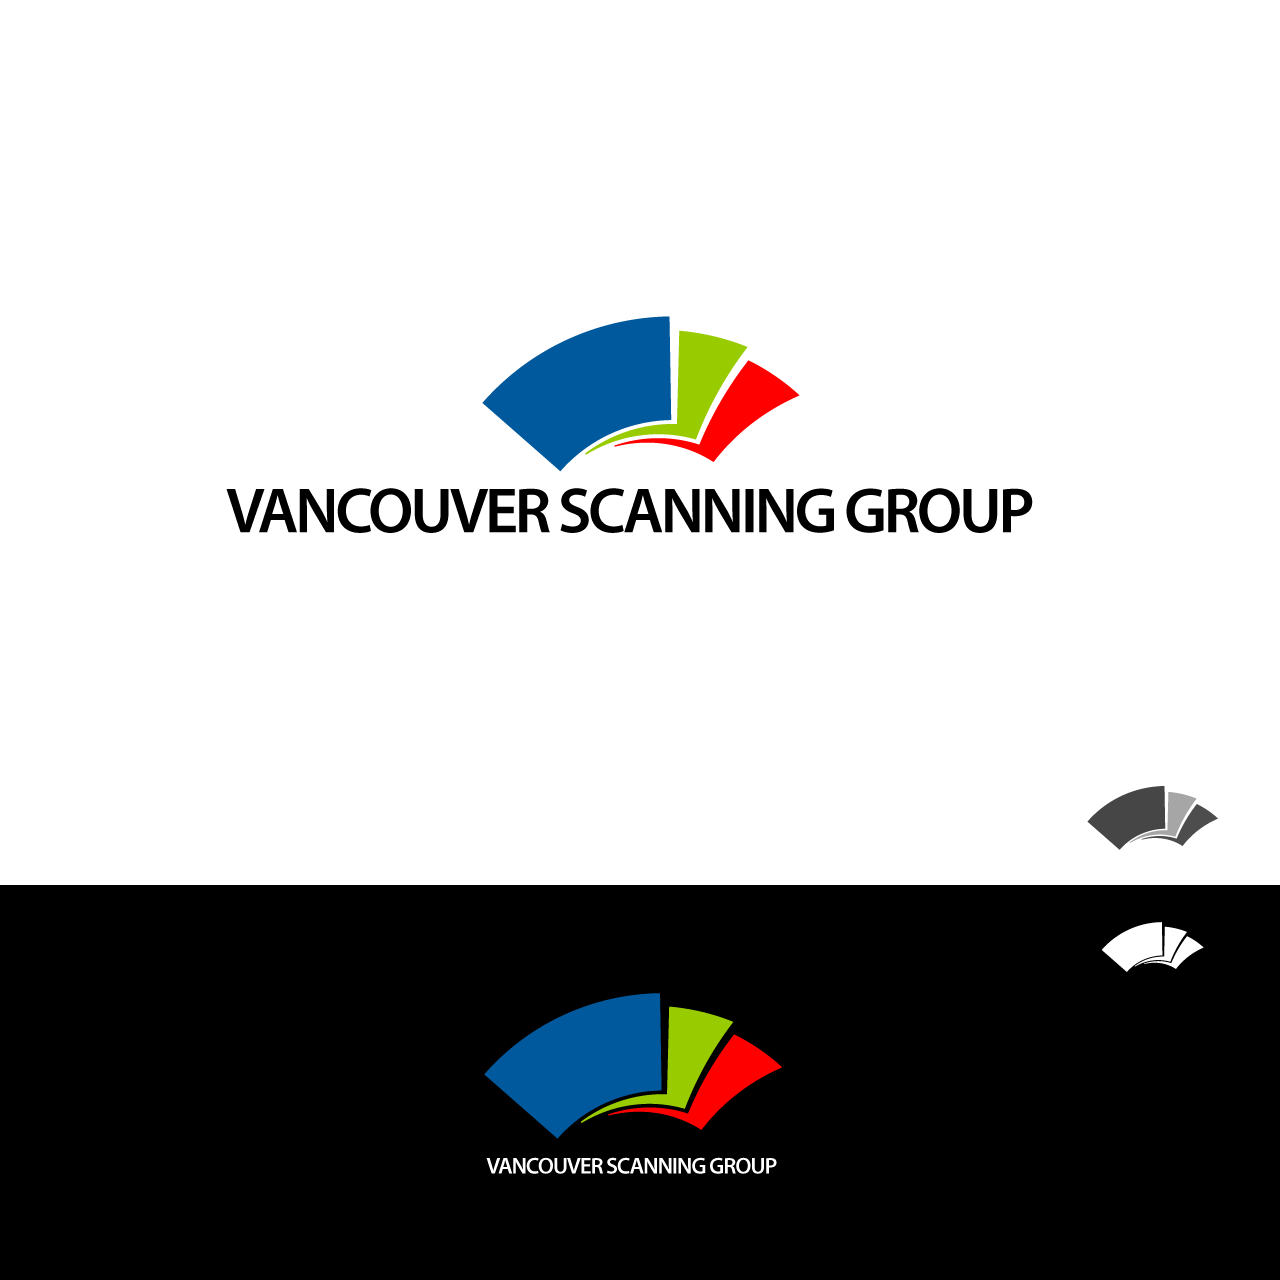 Logo Design by umxca - Entry No. 13 in the Logo Design Contest Vancouver Scanning Group.